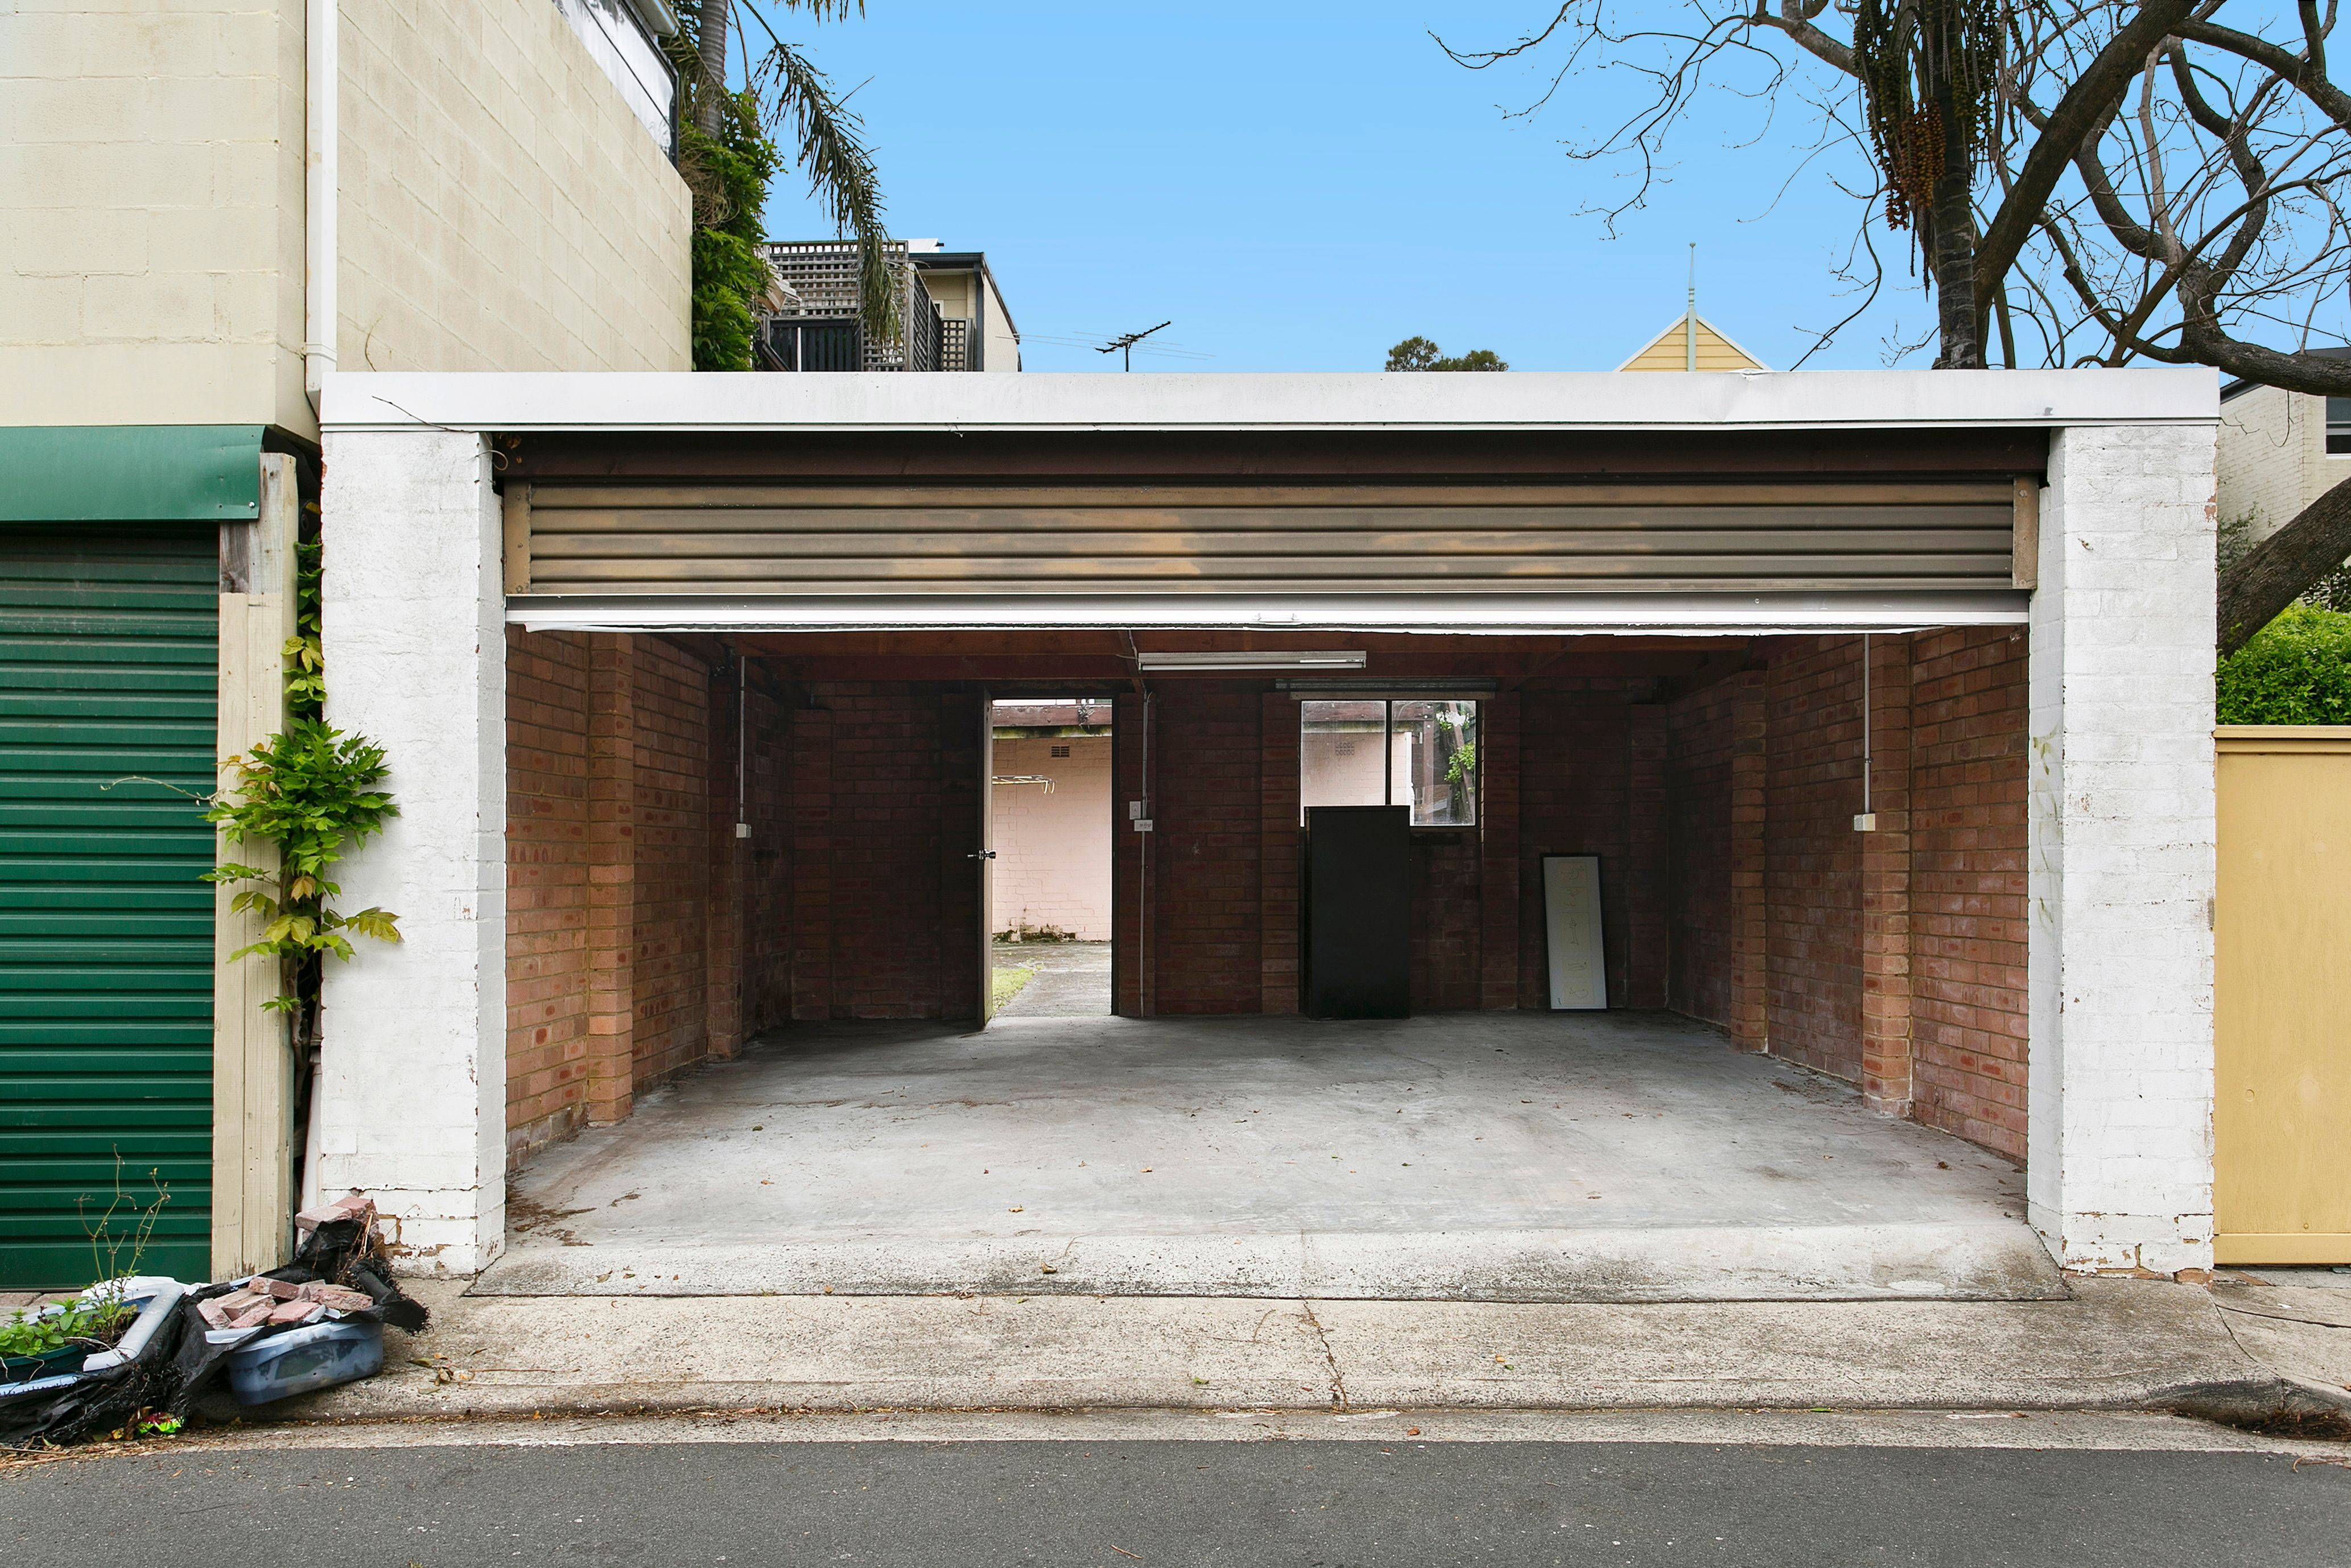 Bon accord avenue bondi junction nsw for sale homely